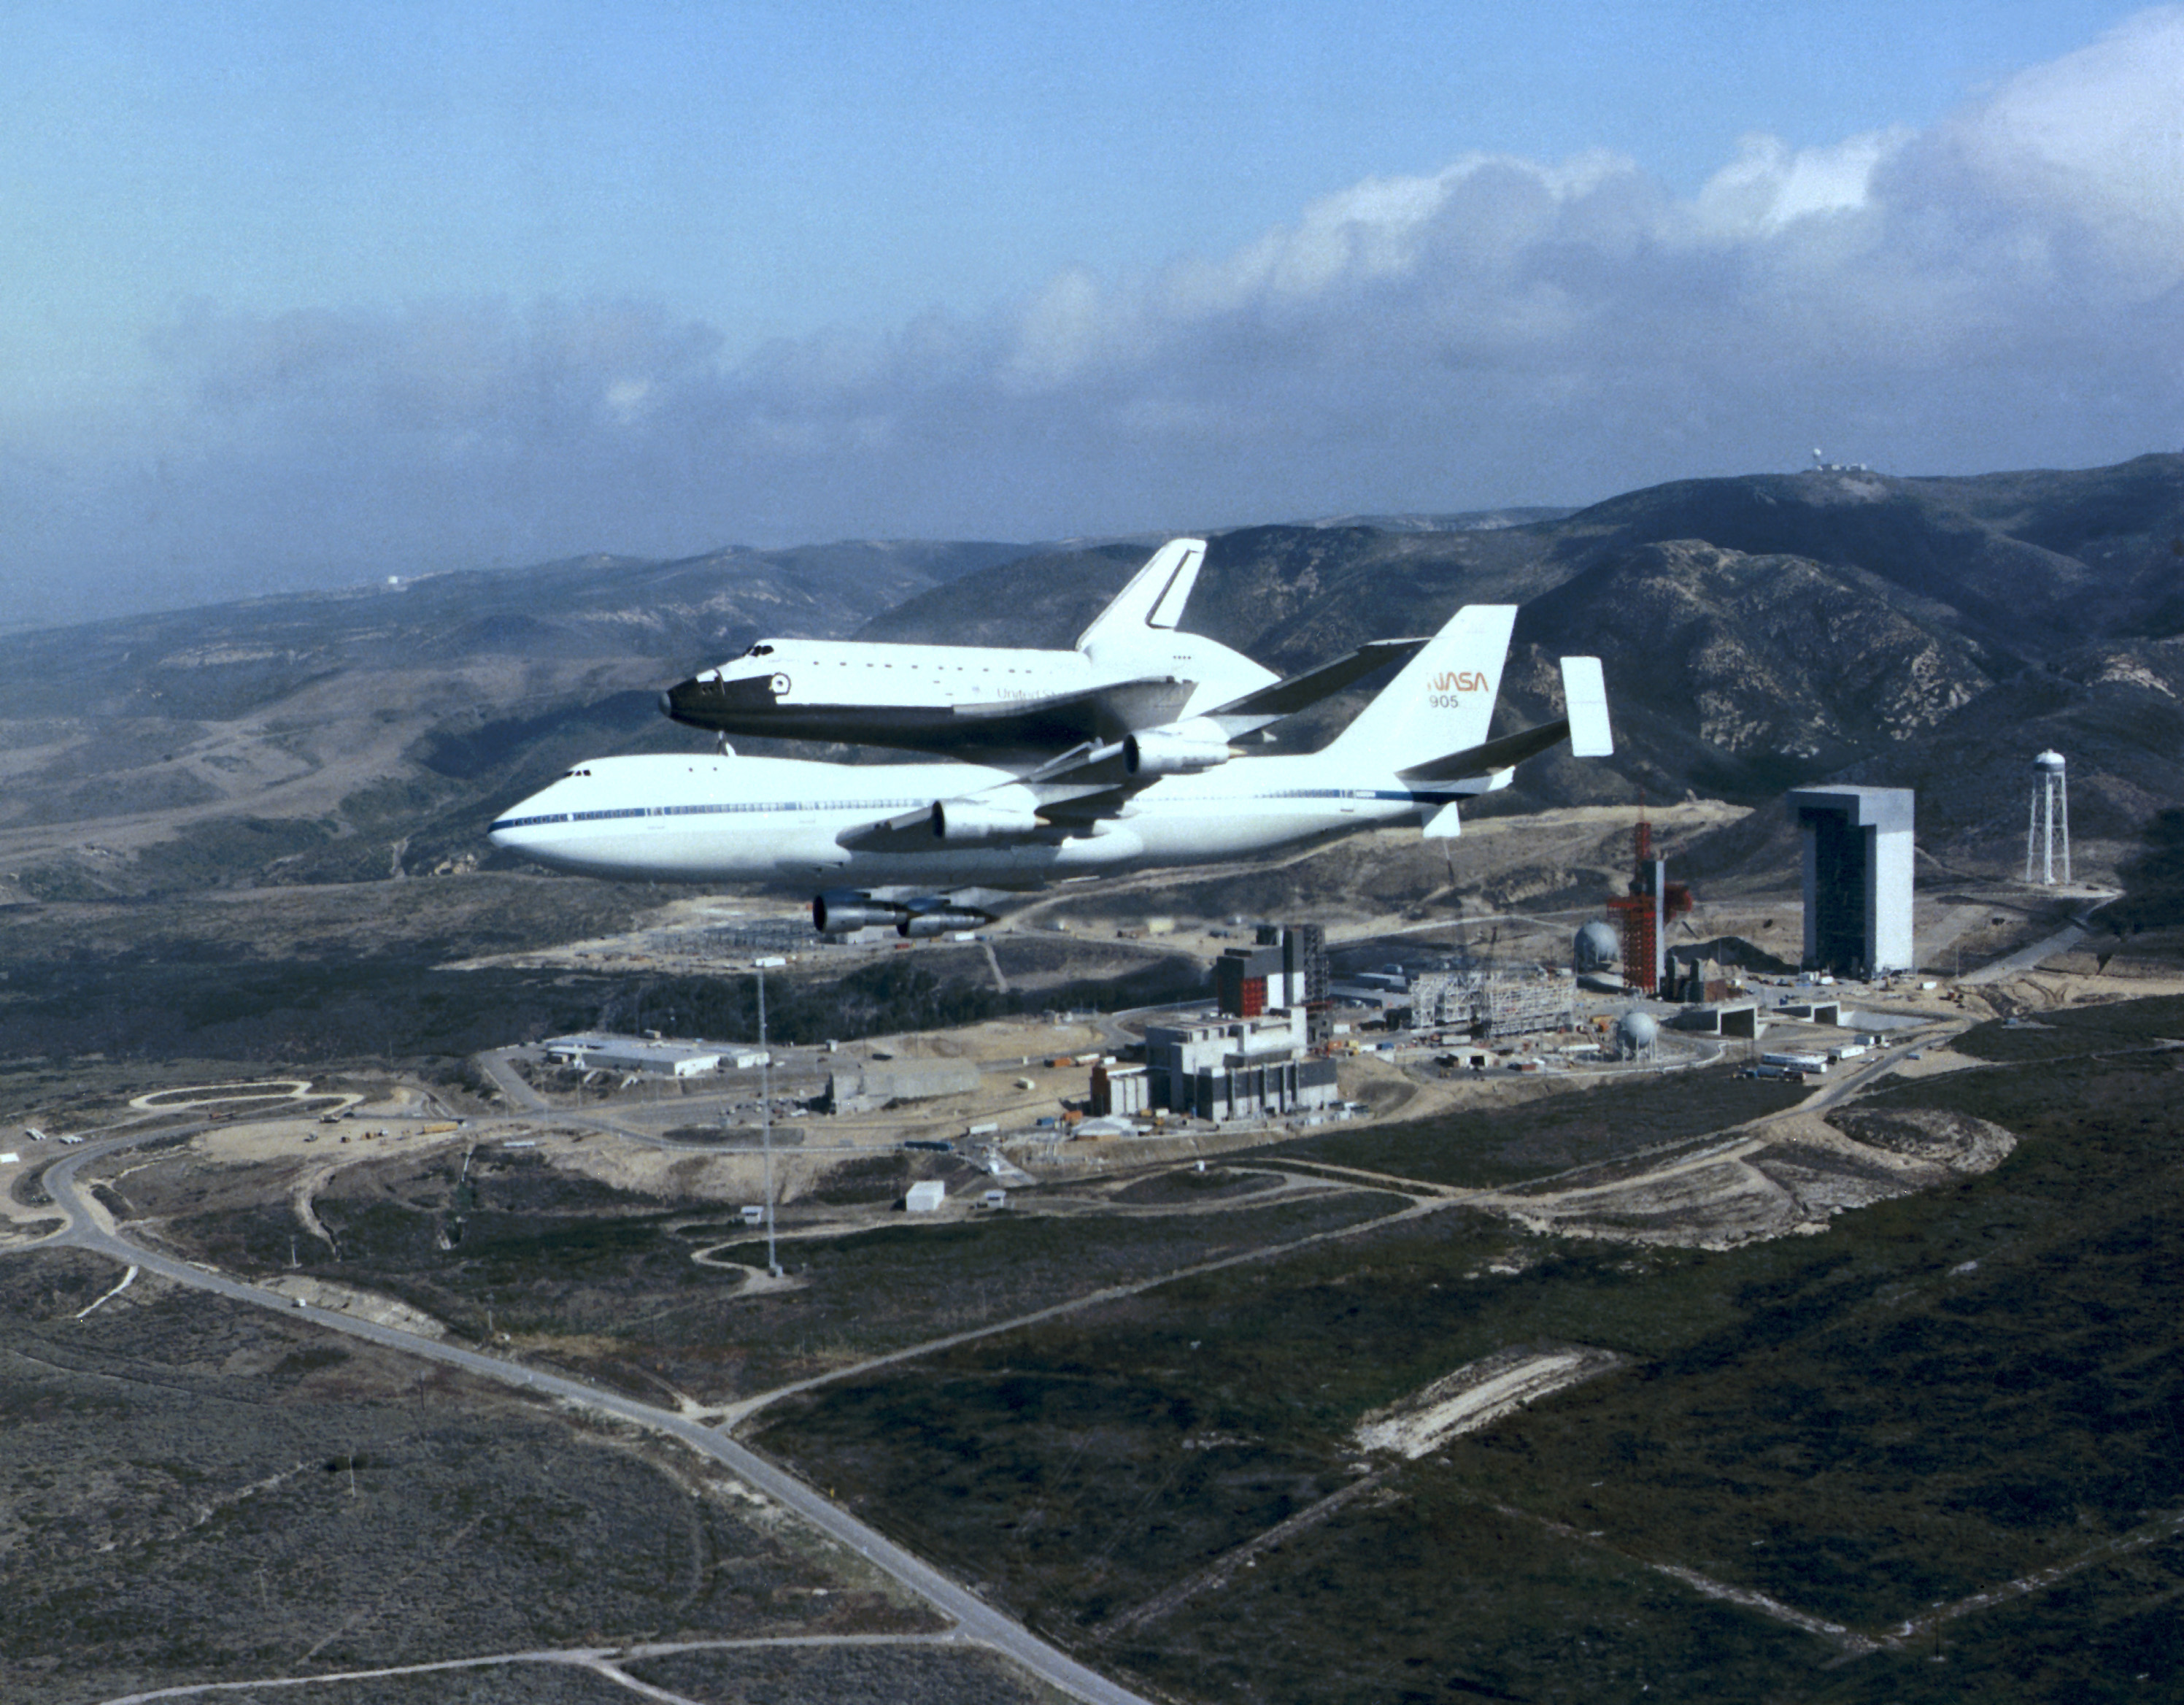 space shuttle at vandenberg - photo #6